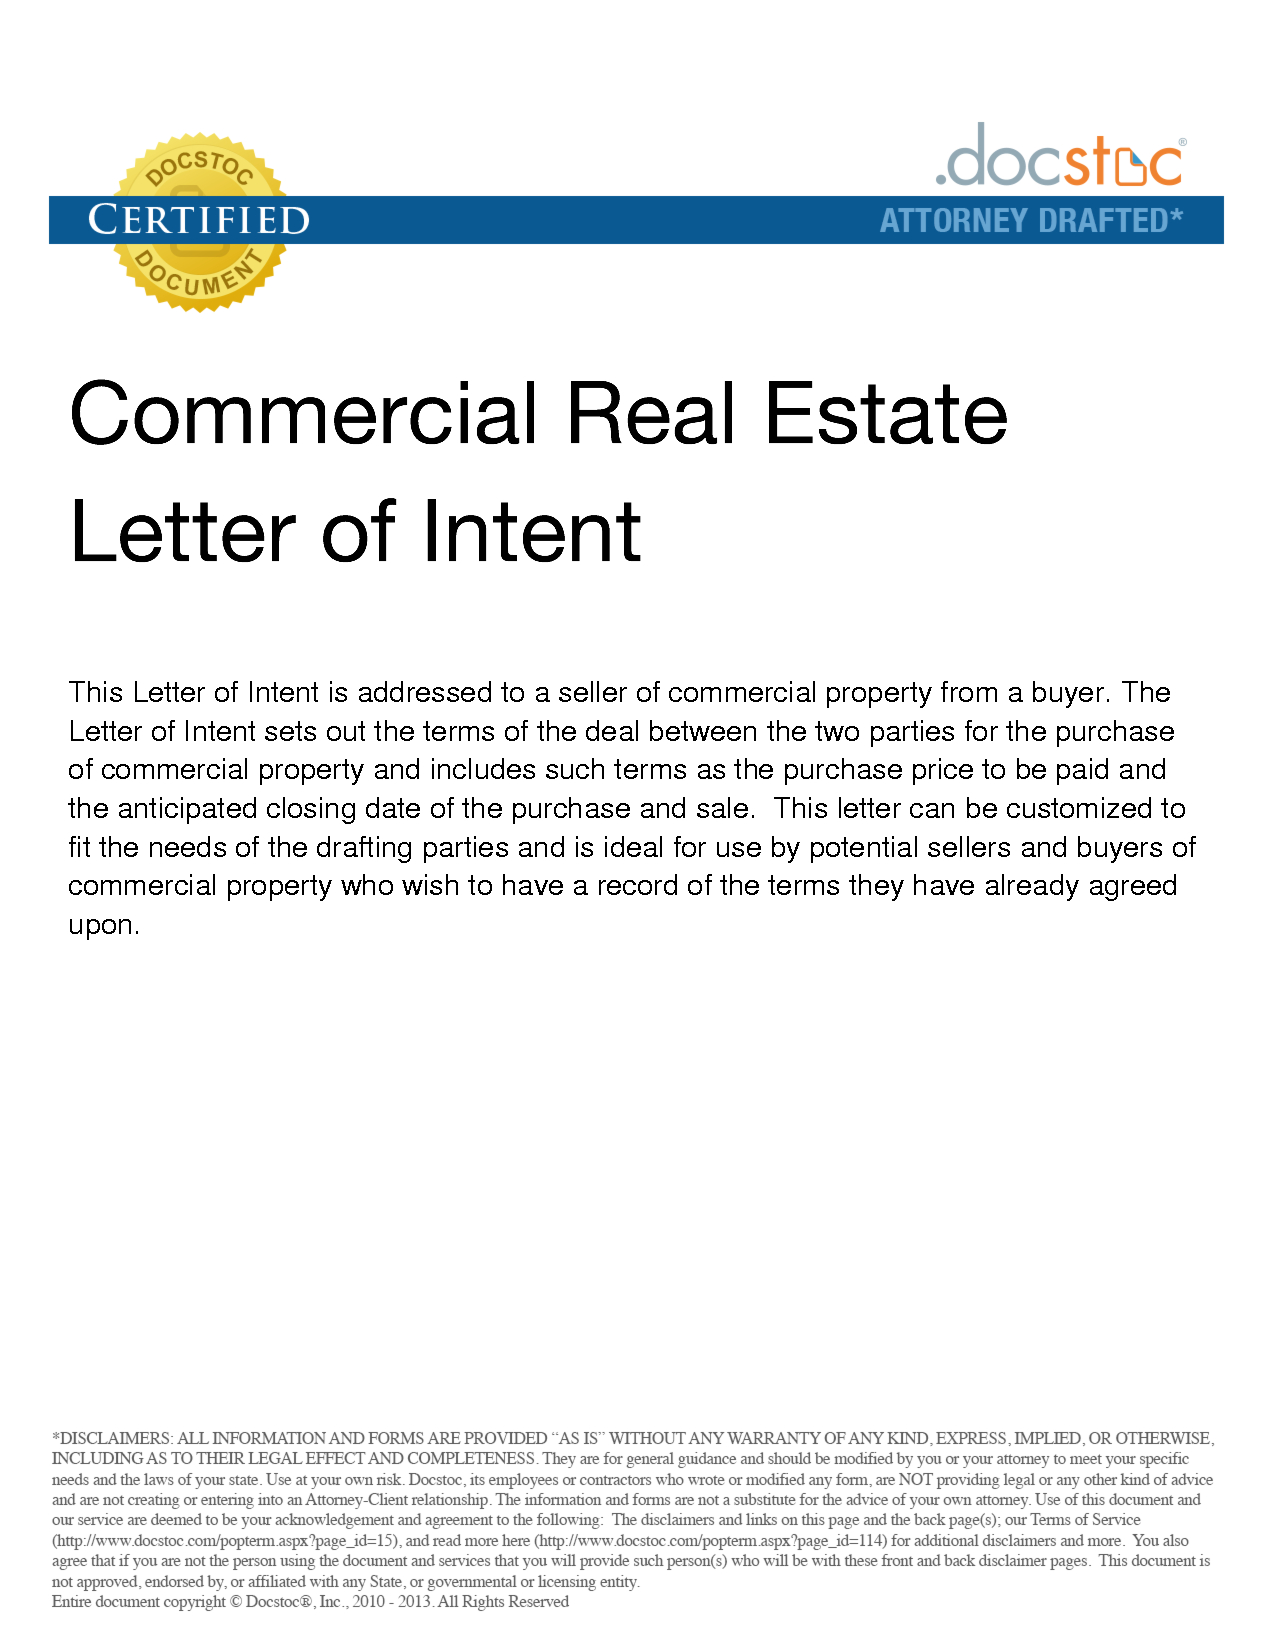 Real Estate Letter Of Intent Template - Sample Letter Intent Purchase Real Estate Best S Property